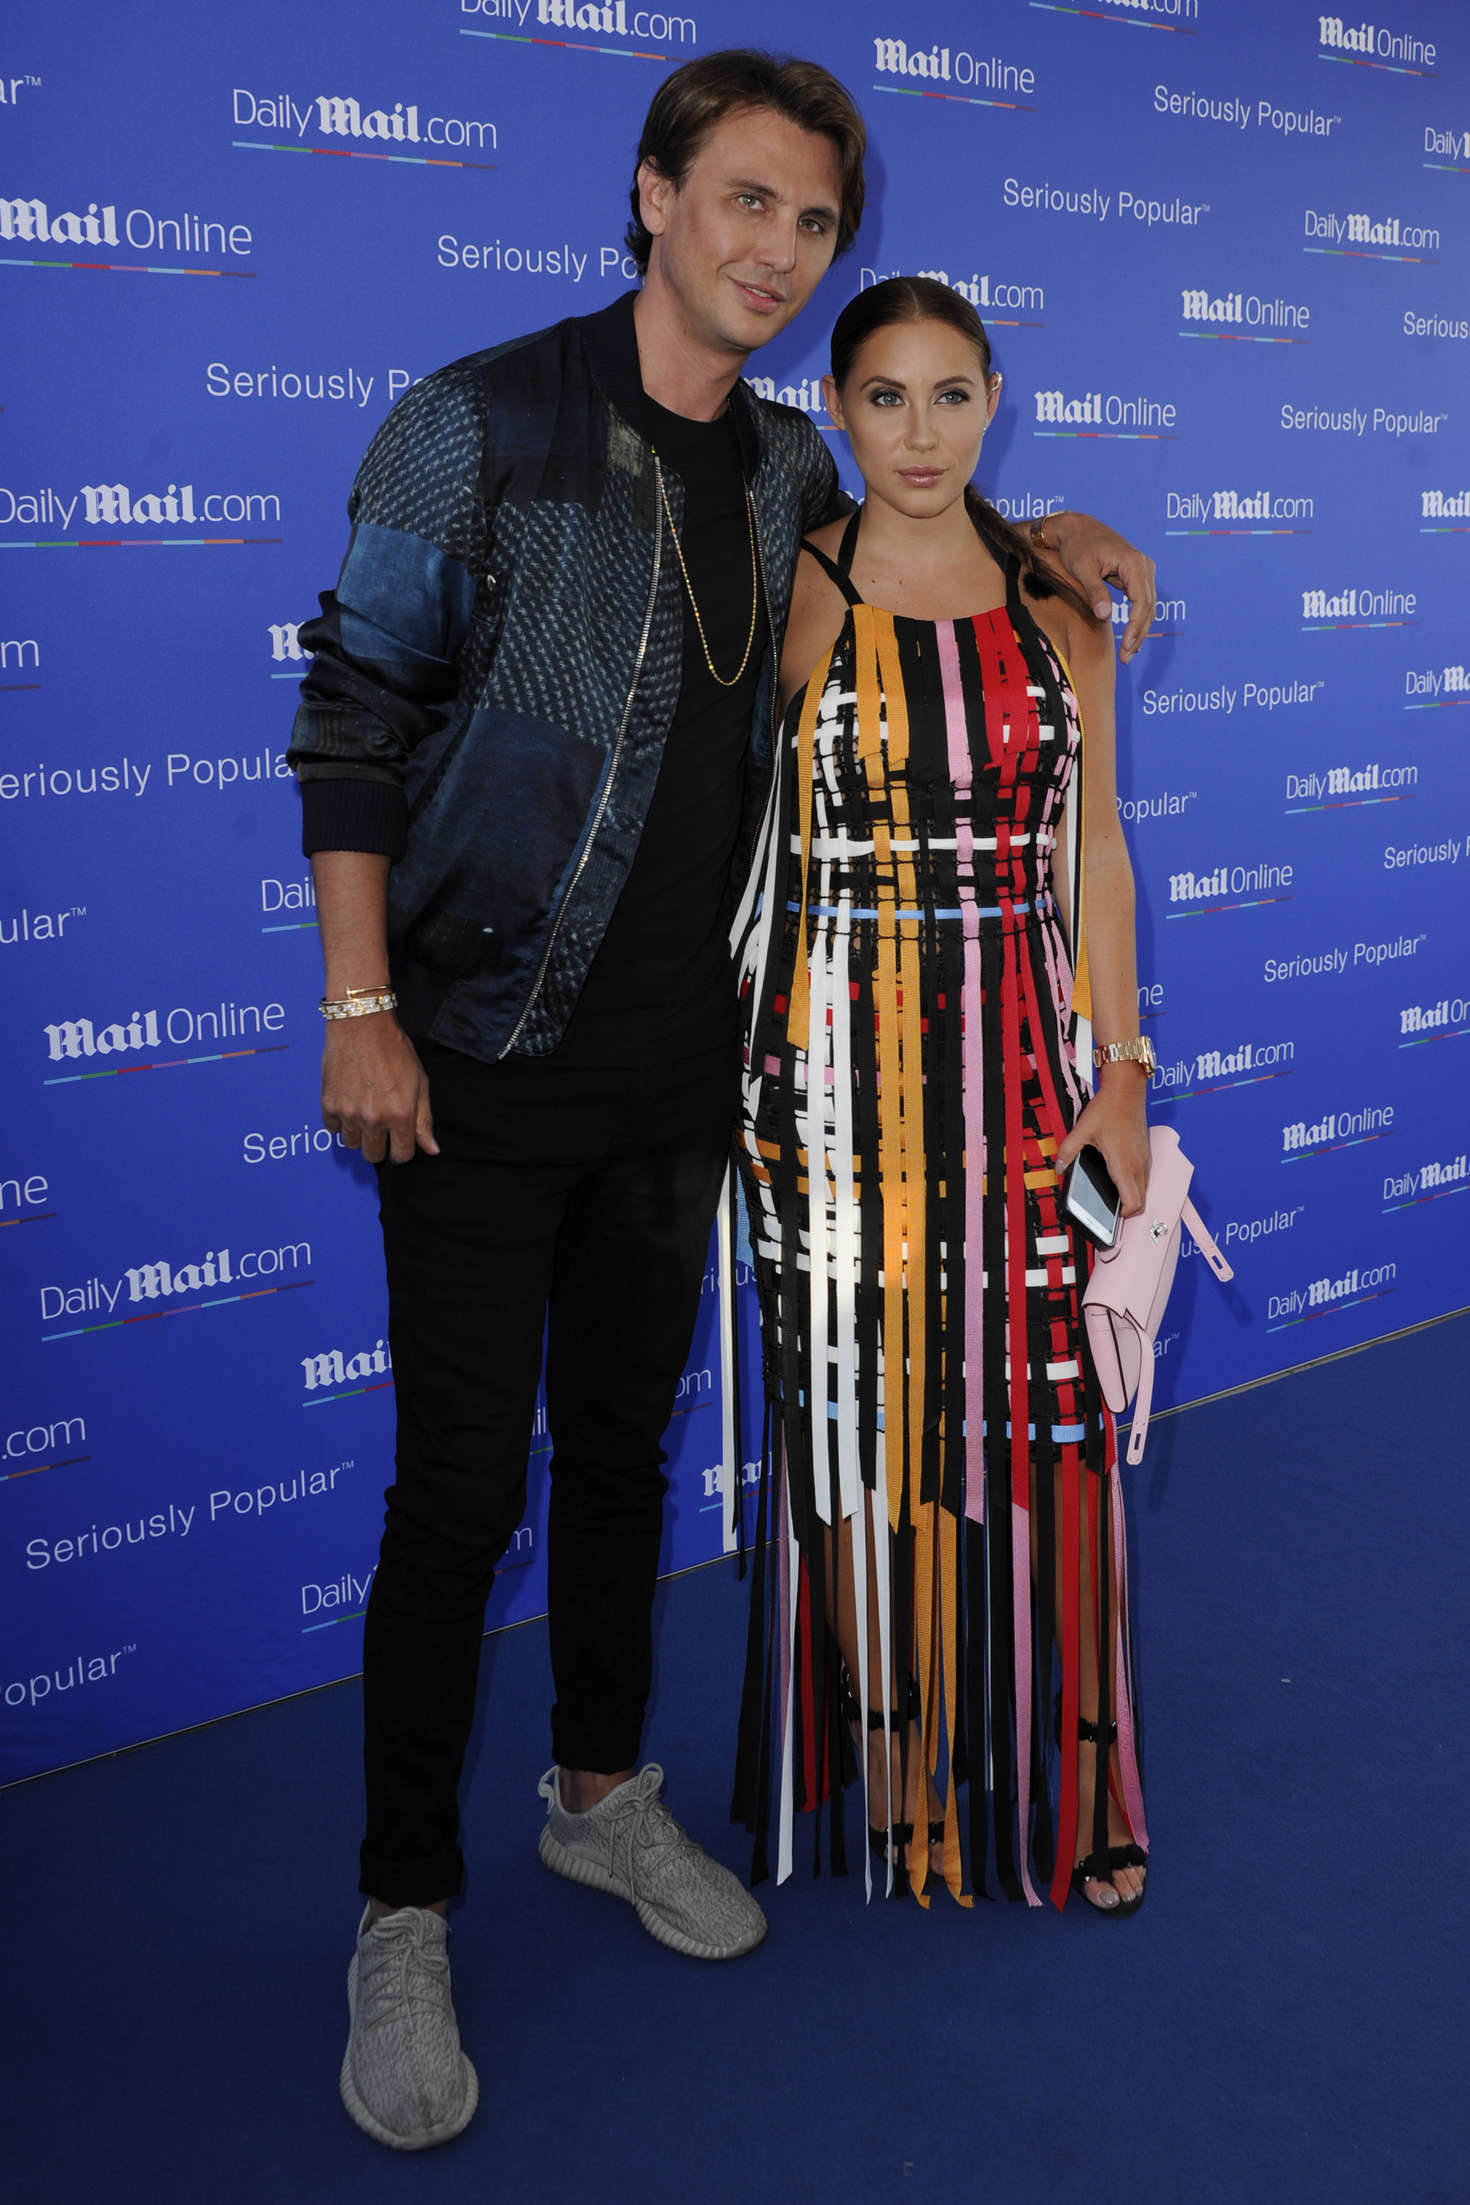 Anat Popovsk - Party Daily Mail at Cannes Lions festival in Cannes